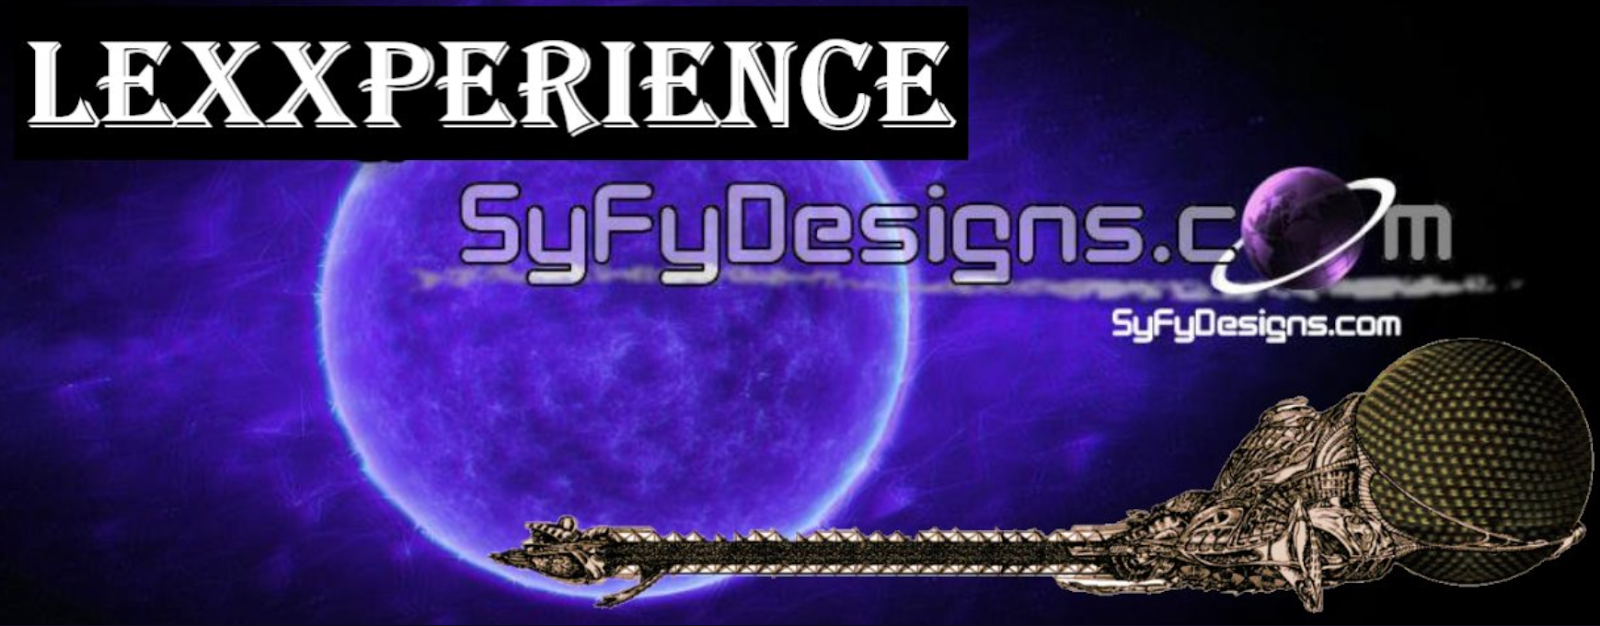 Lexxperience Lexx at SyfyDesigns.com